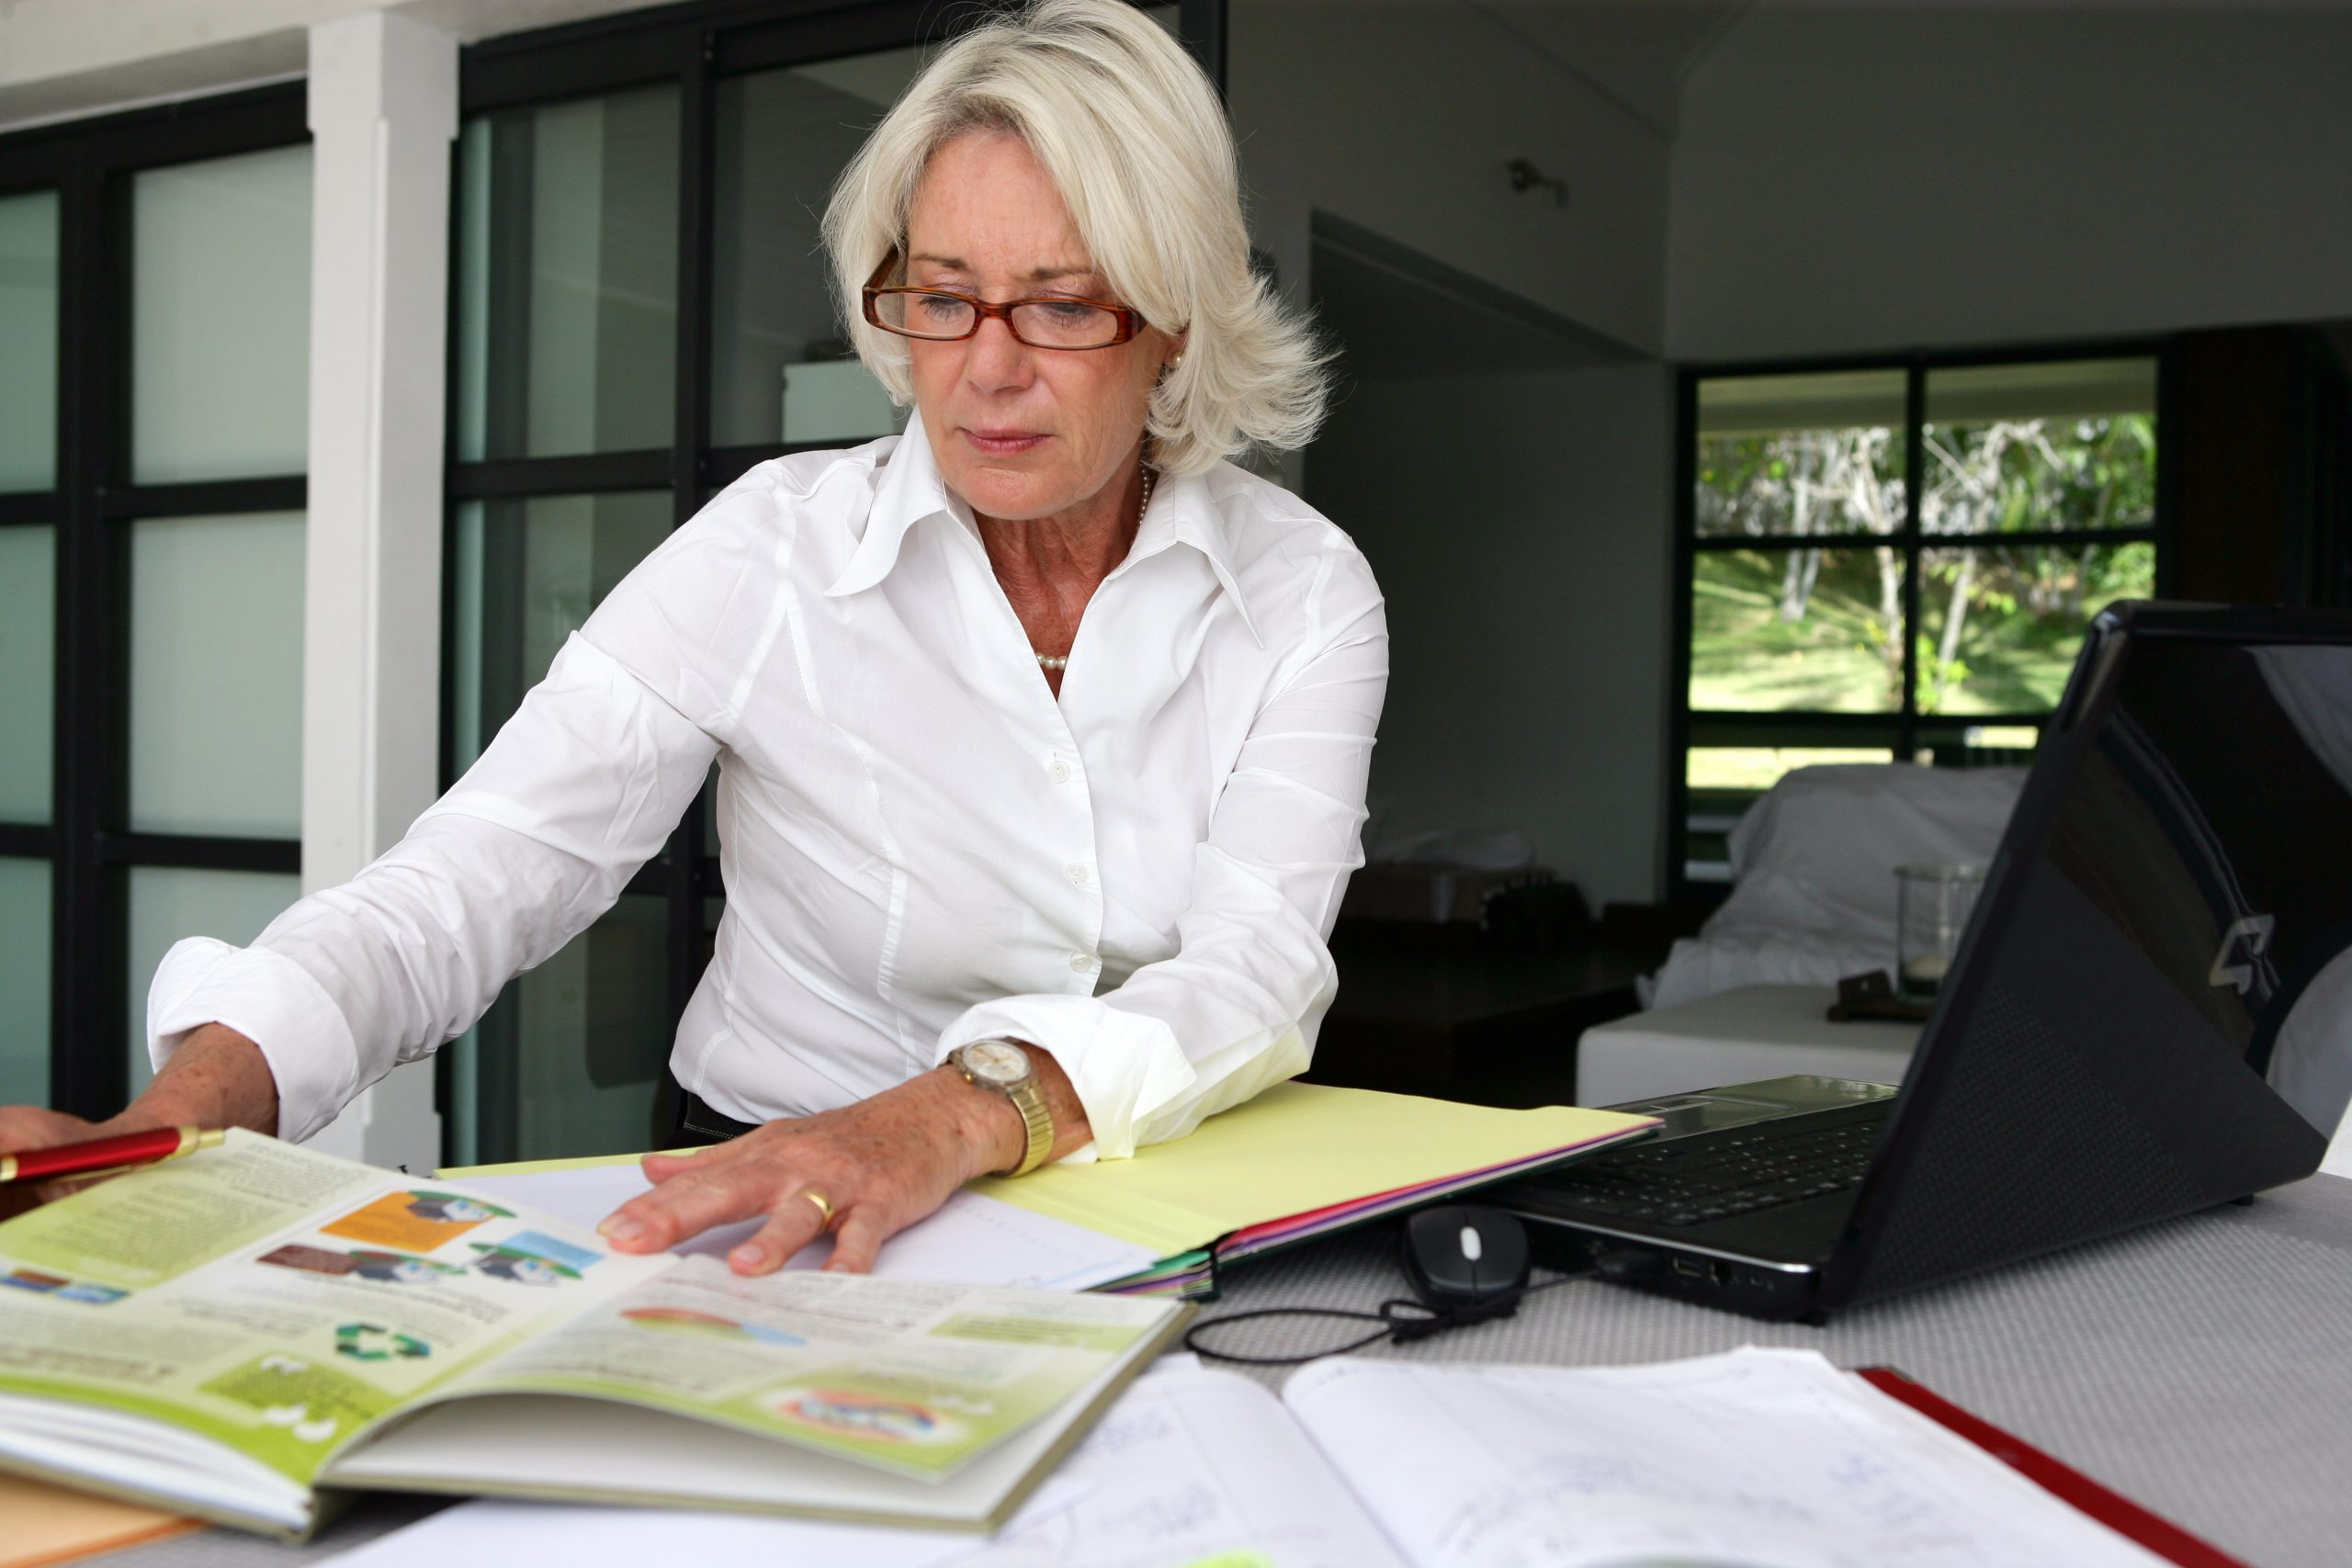 Work From Home Age 50+